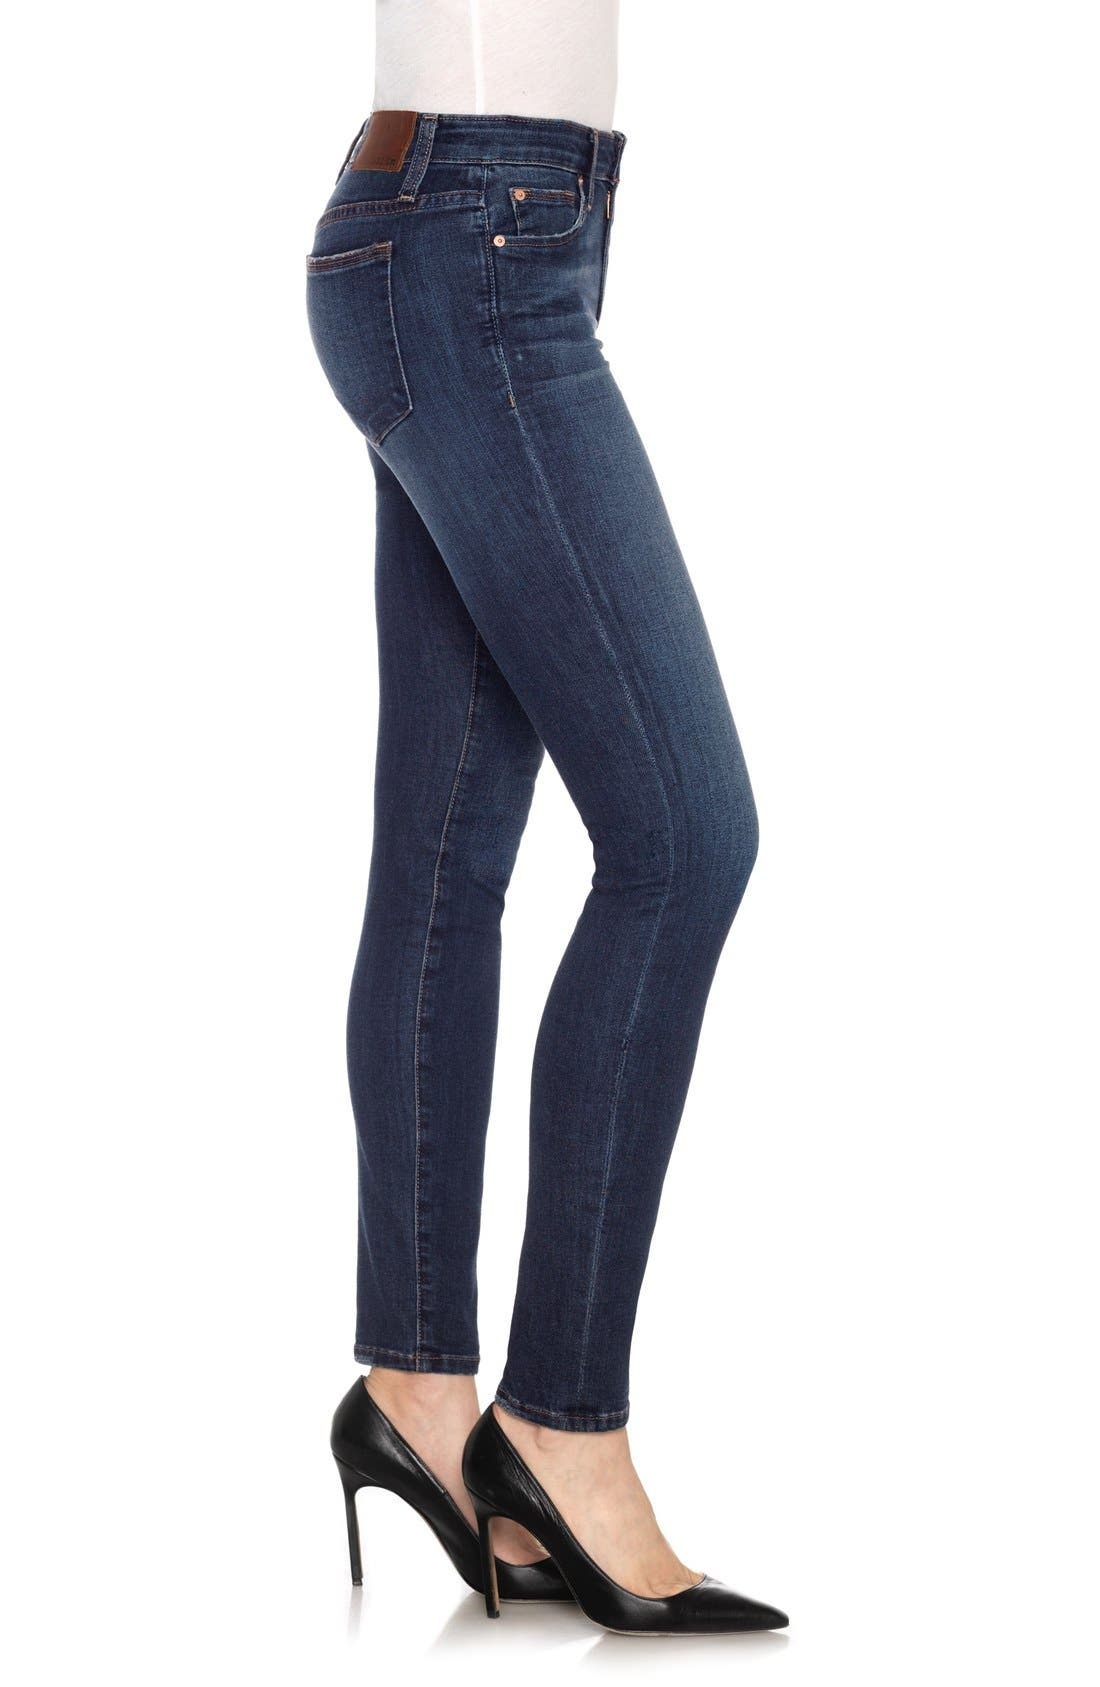 Icon Skinny Jeans,                             Alternate thumbnail 4, color,                             410